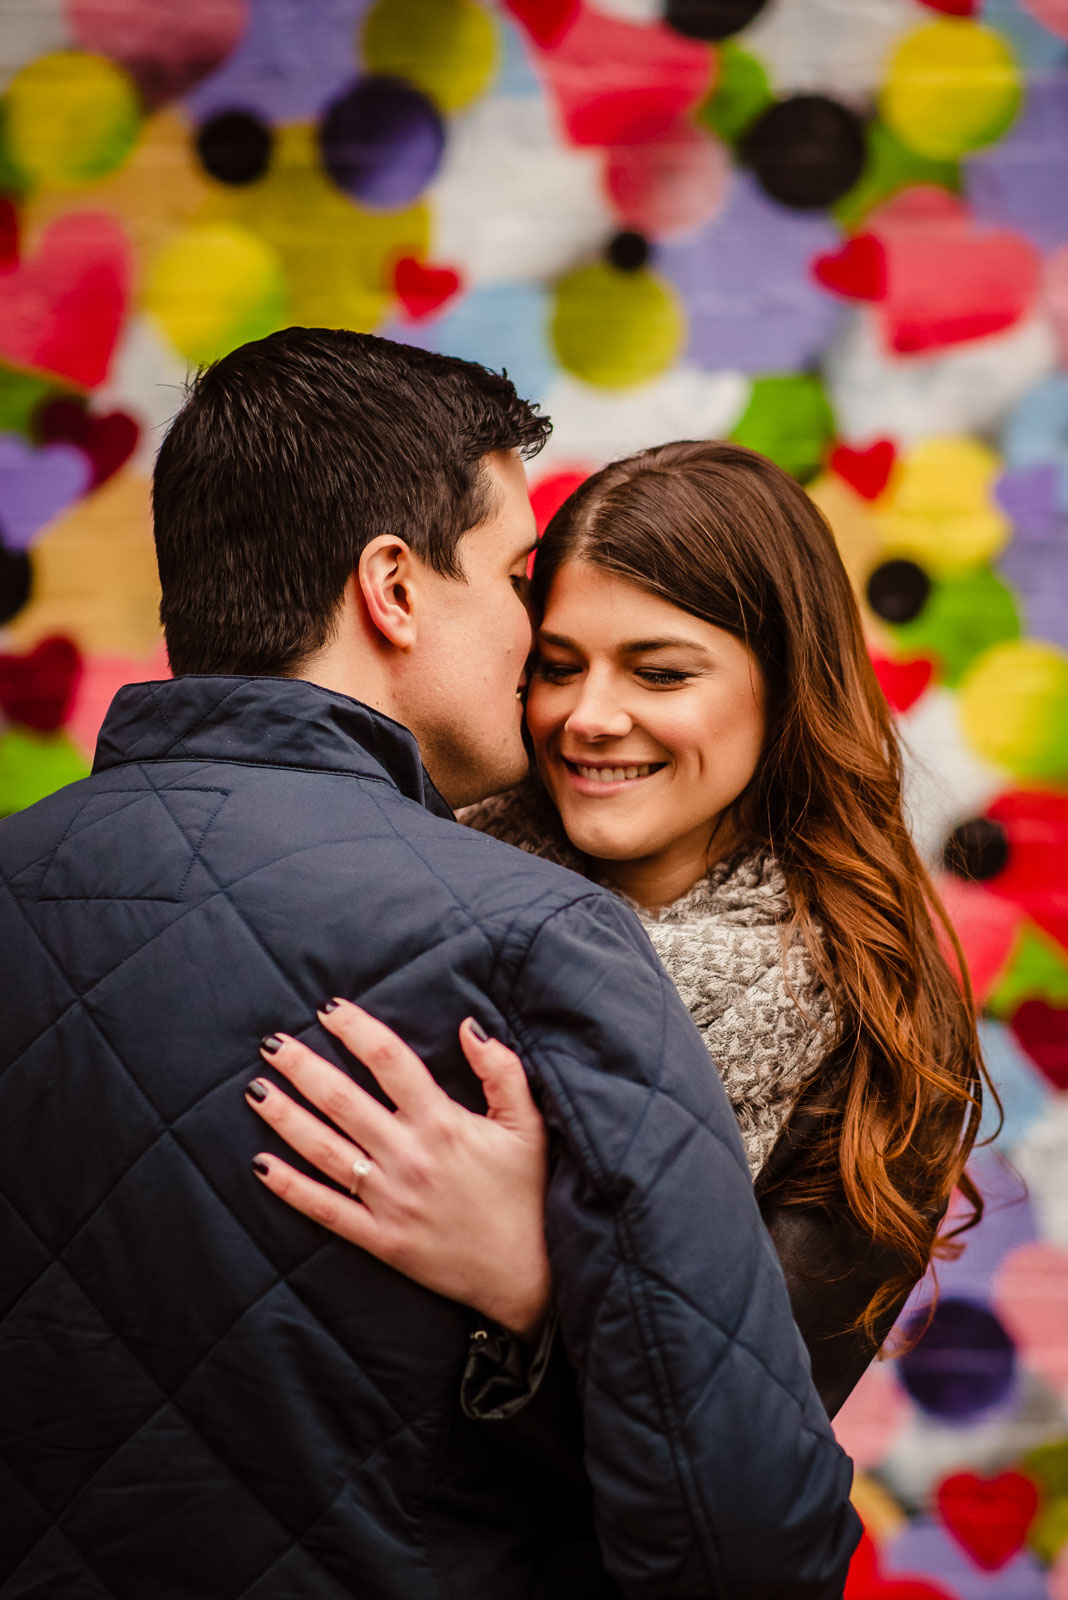 East Village Engagement session